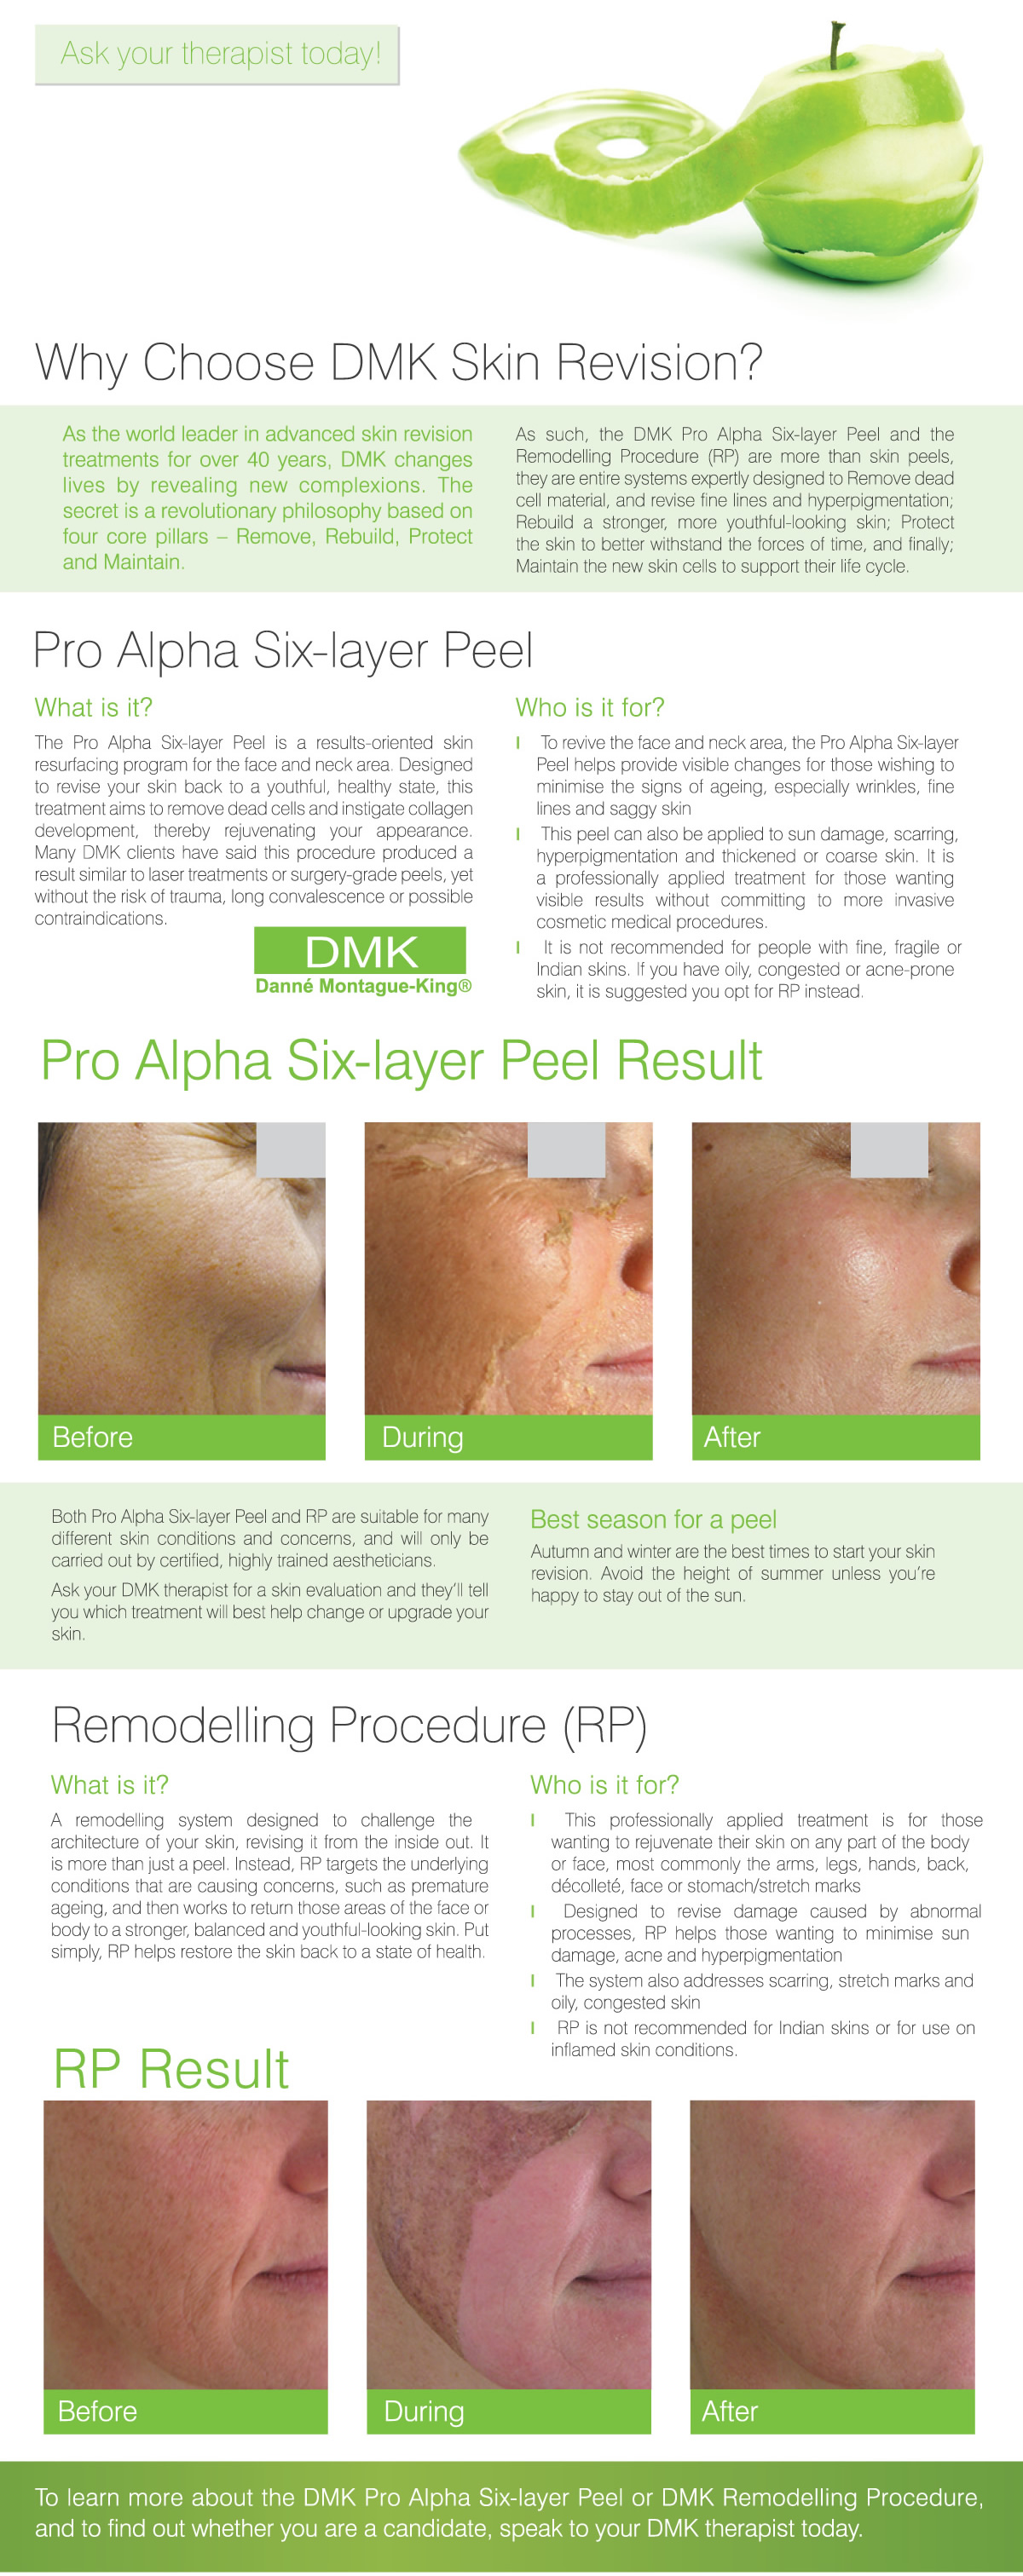 DMK Pro Alpha Six Layer Peel